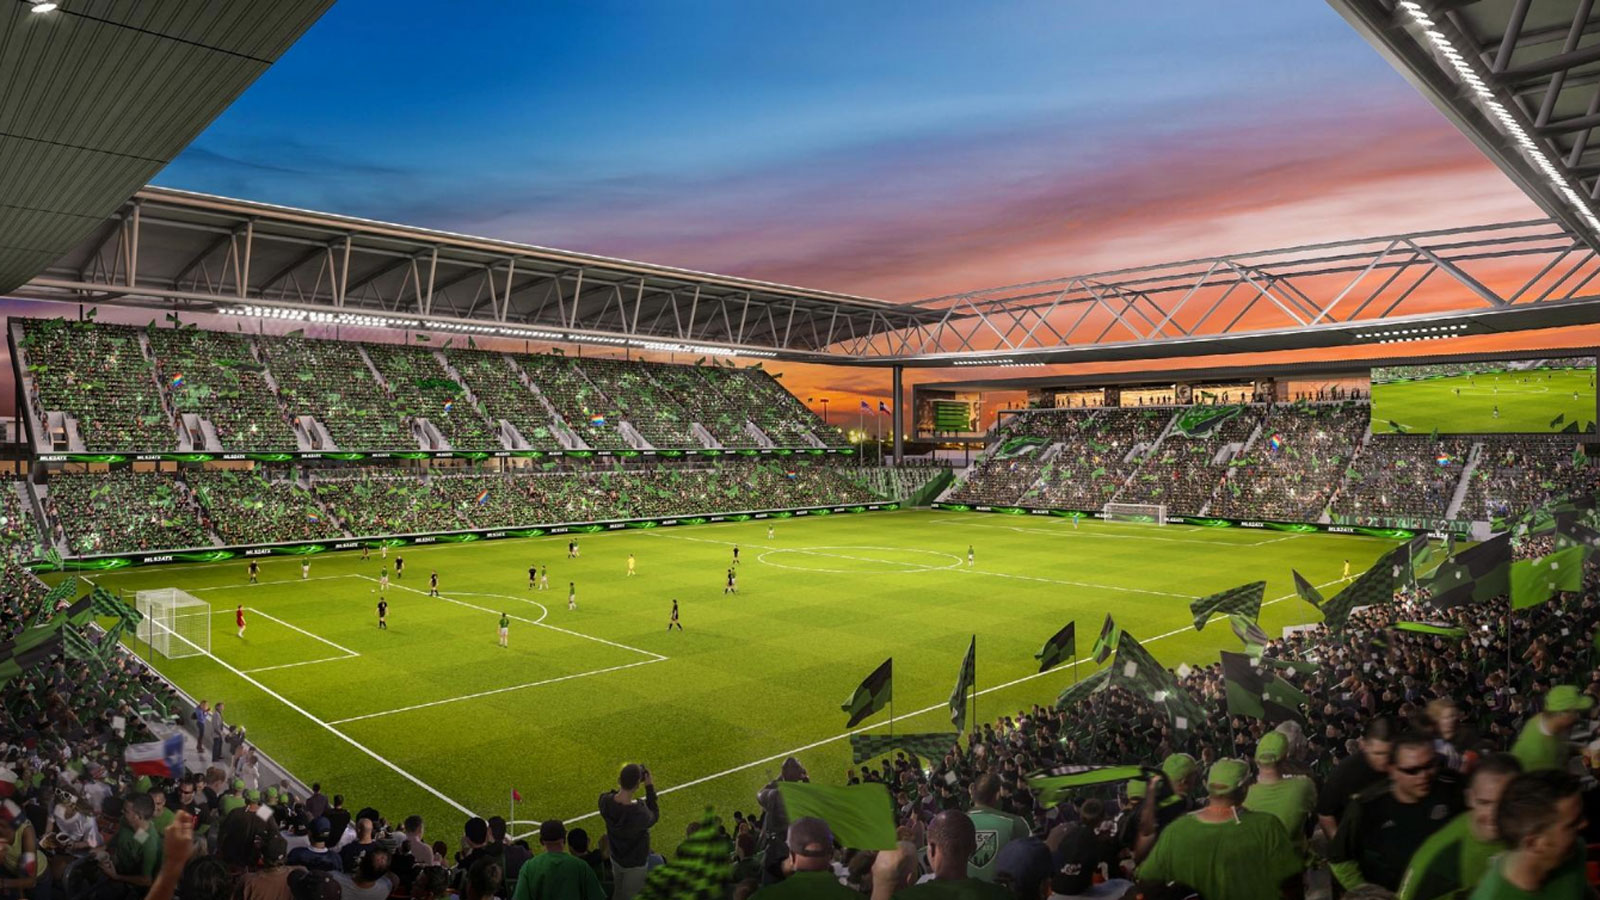 A rendering of what the Columbus Crew's stadium in Austin could look like